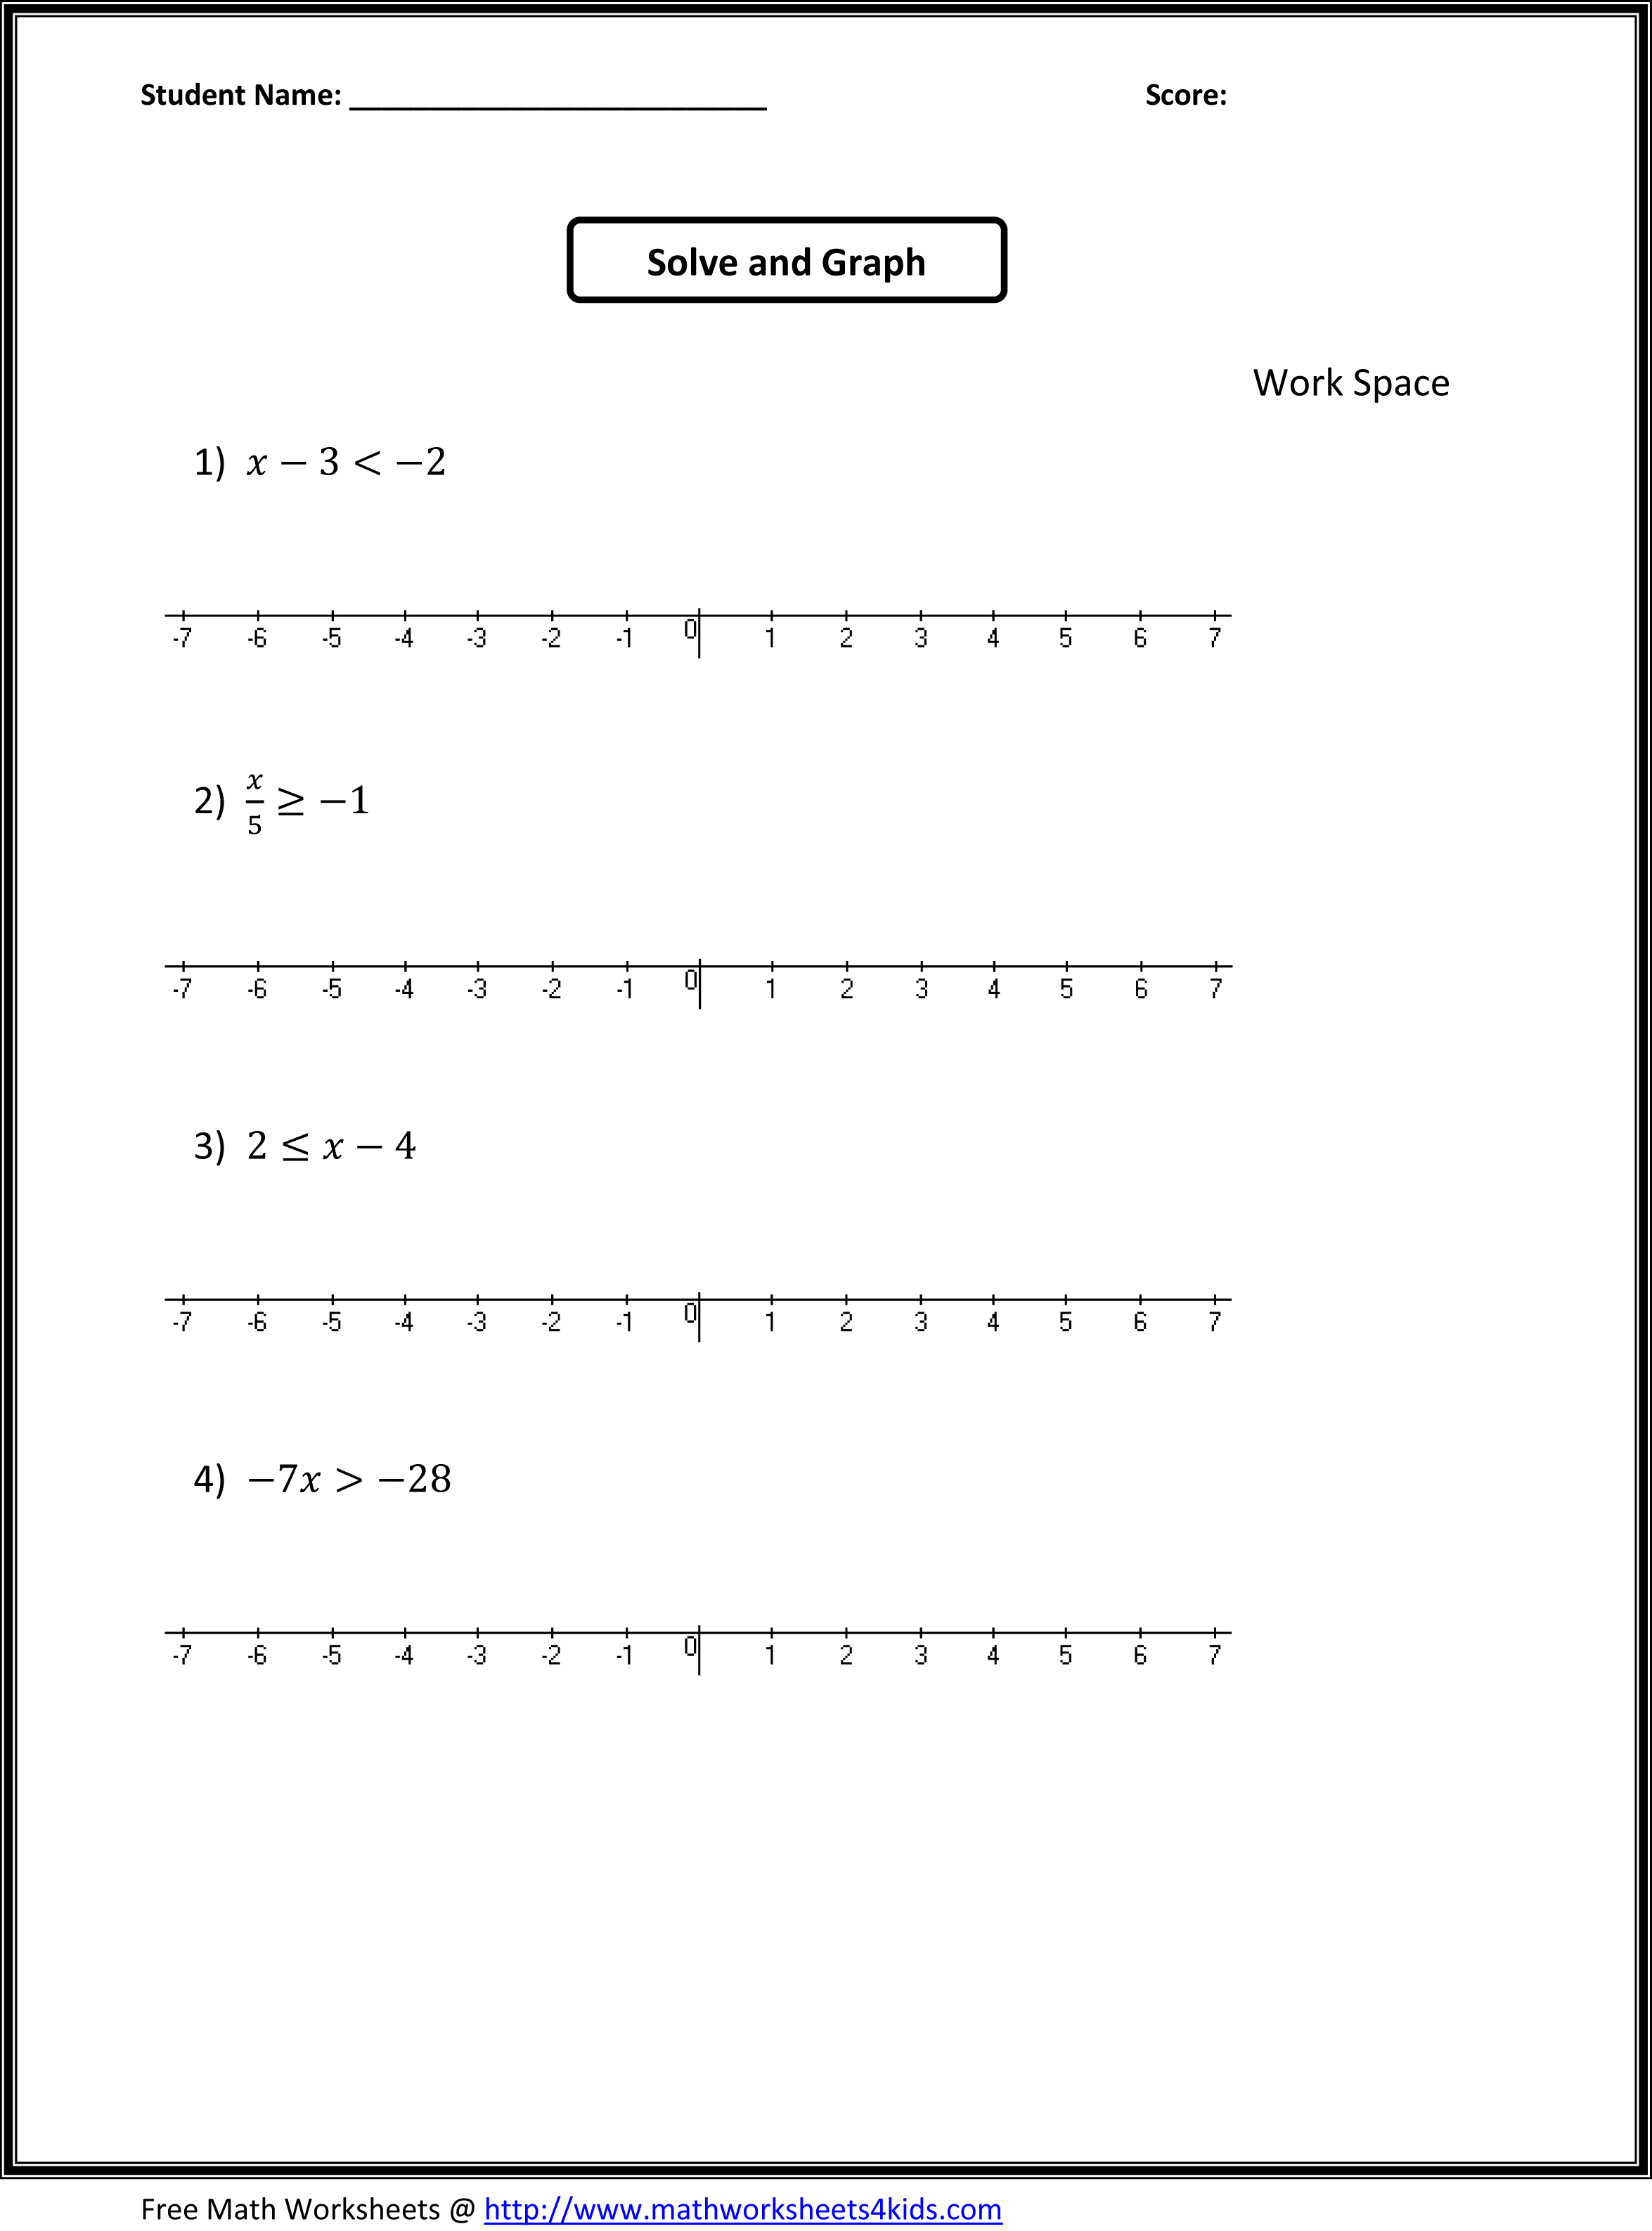 15 Best Images Of Solving And Graphing Inequalities Worksheets